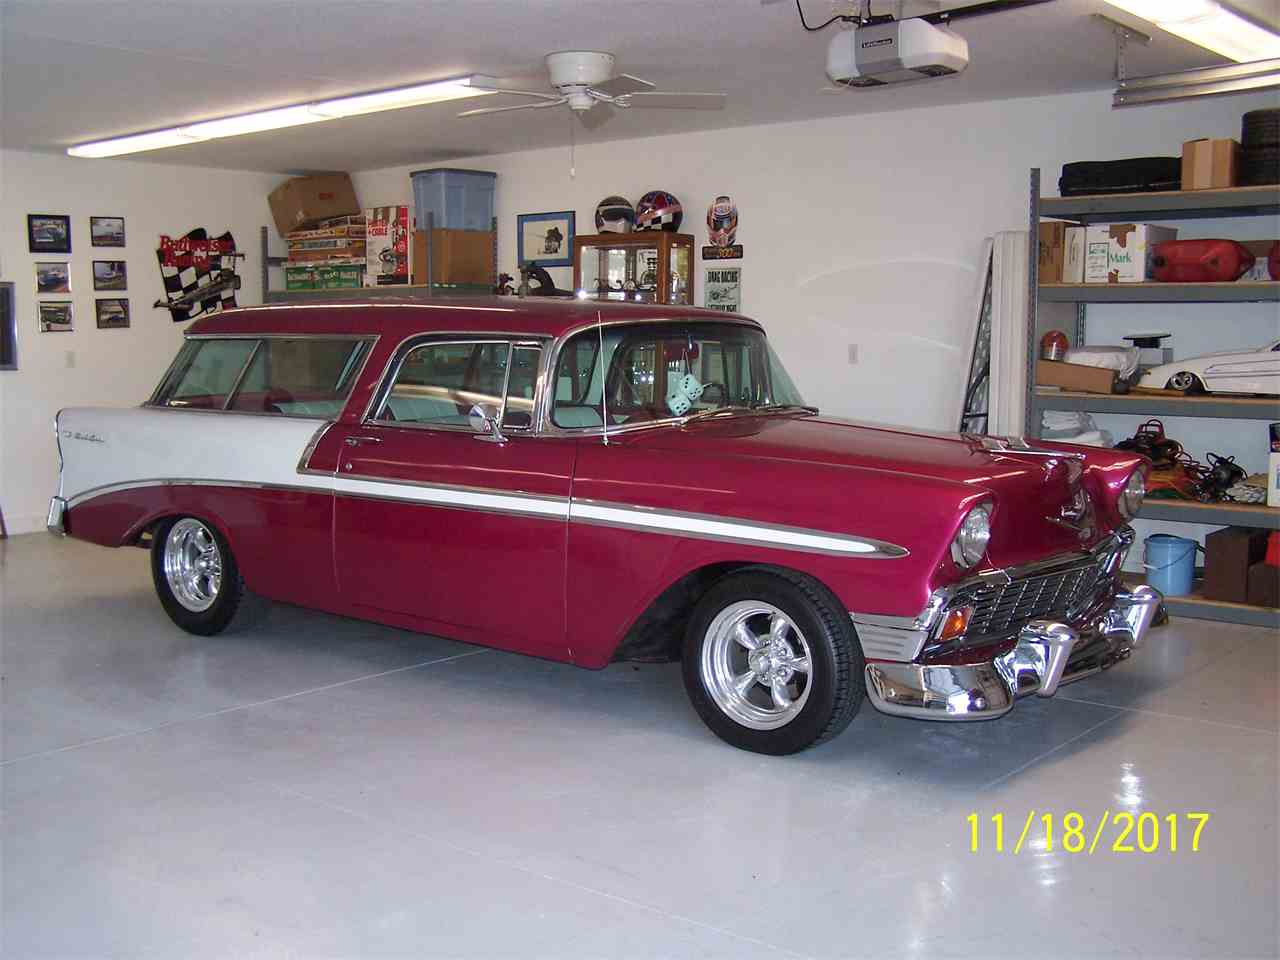 Convertible 1956 chevy bel air convertible : 1956 Chevrolet Bel Air for Sale on ClassicCars.com